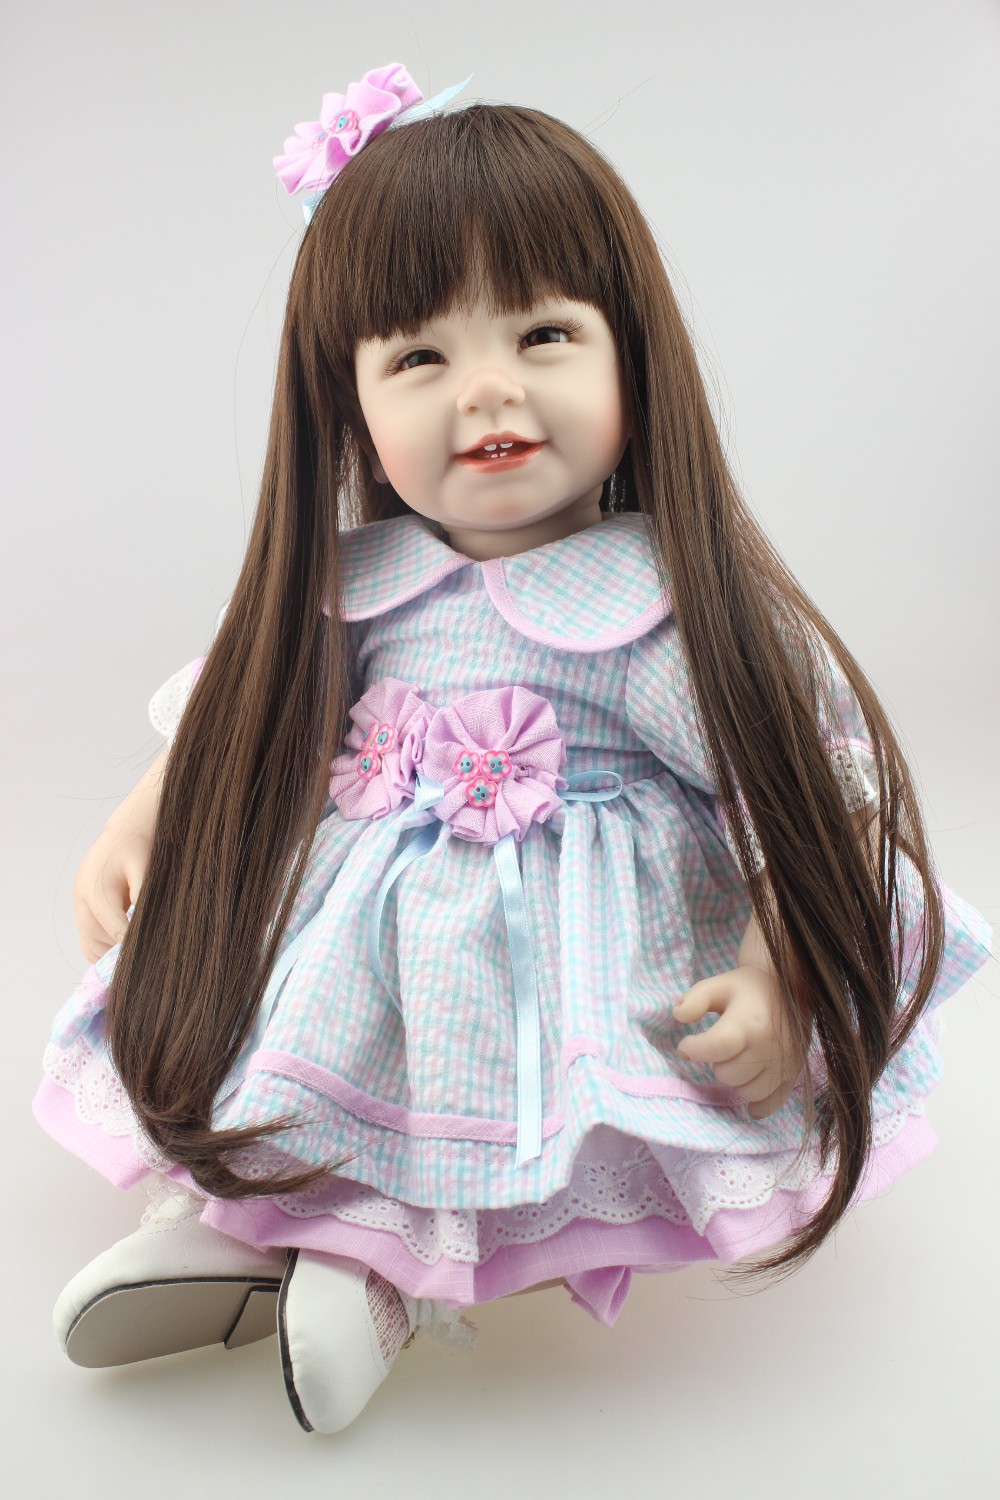 doll alive 22inch 55cm Reborn Toddler baby doll lifelike sweet girl real gentle touch uniquebaby doll glue wig long wig for kids